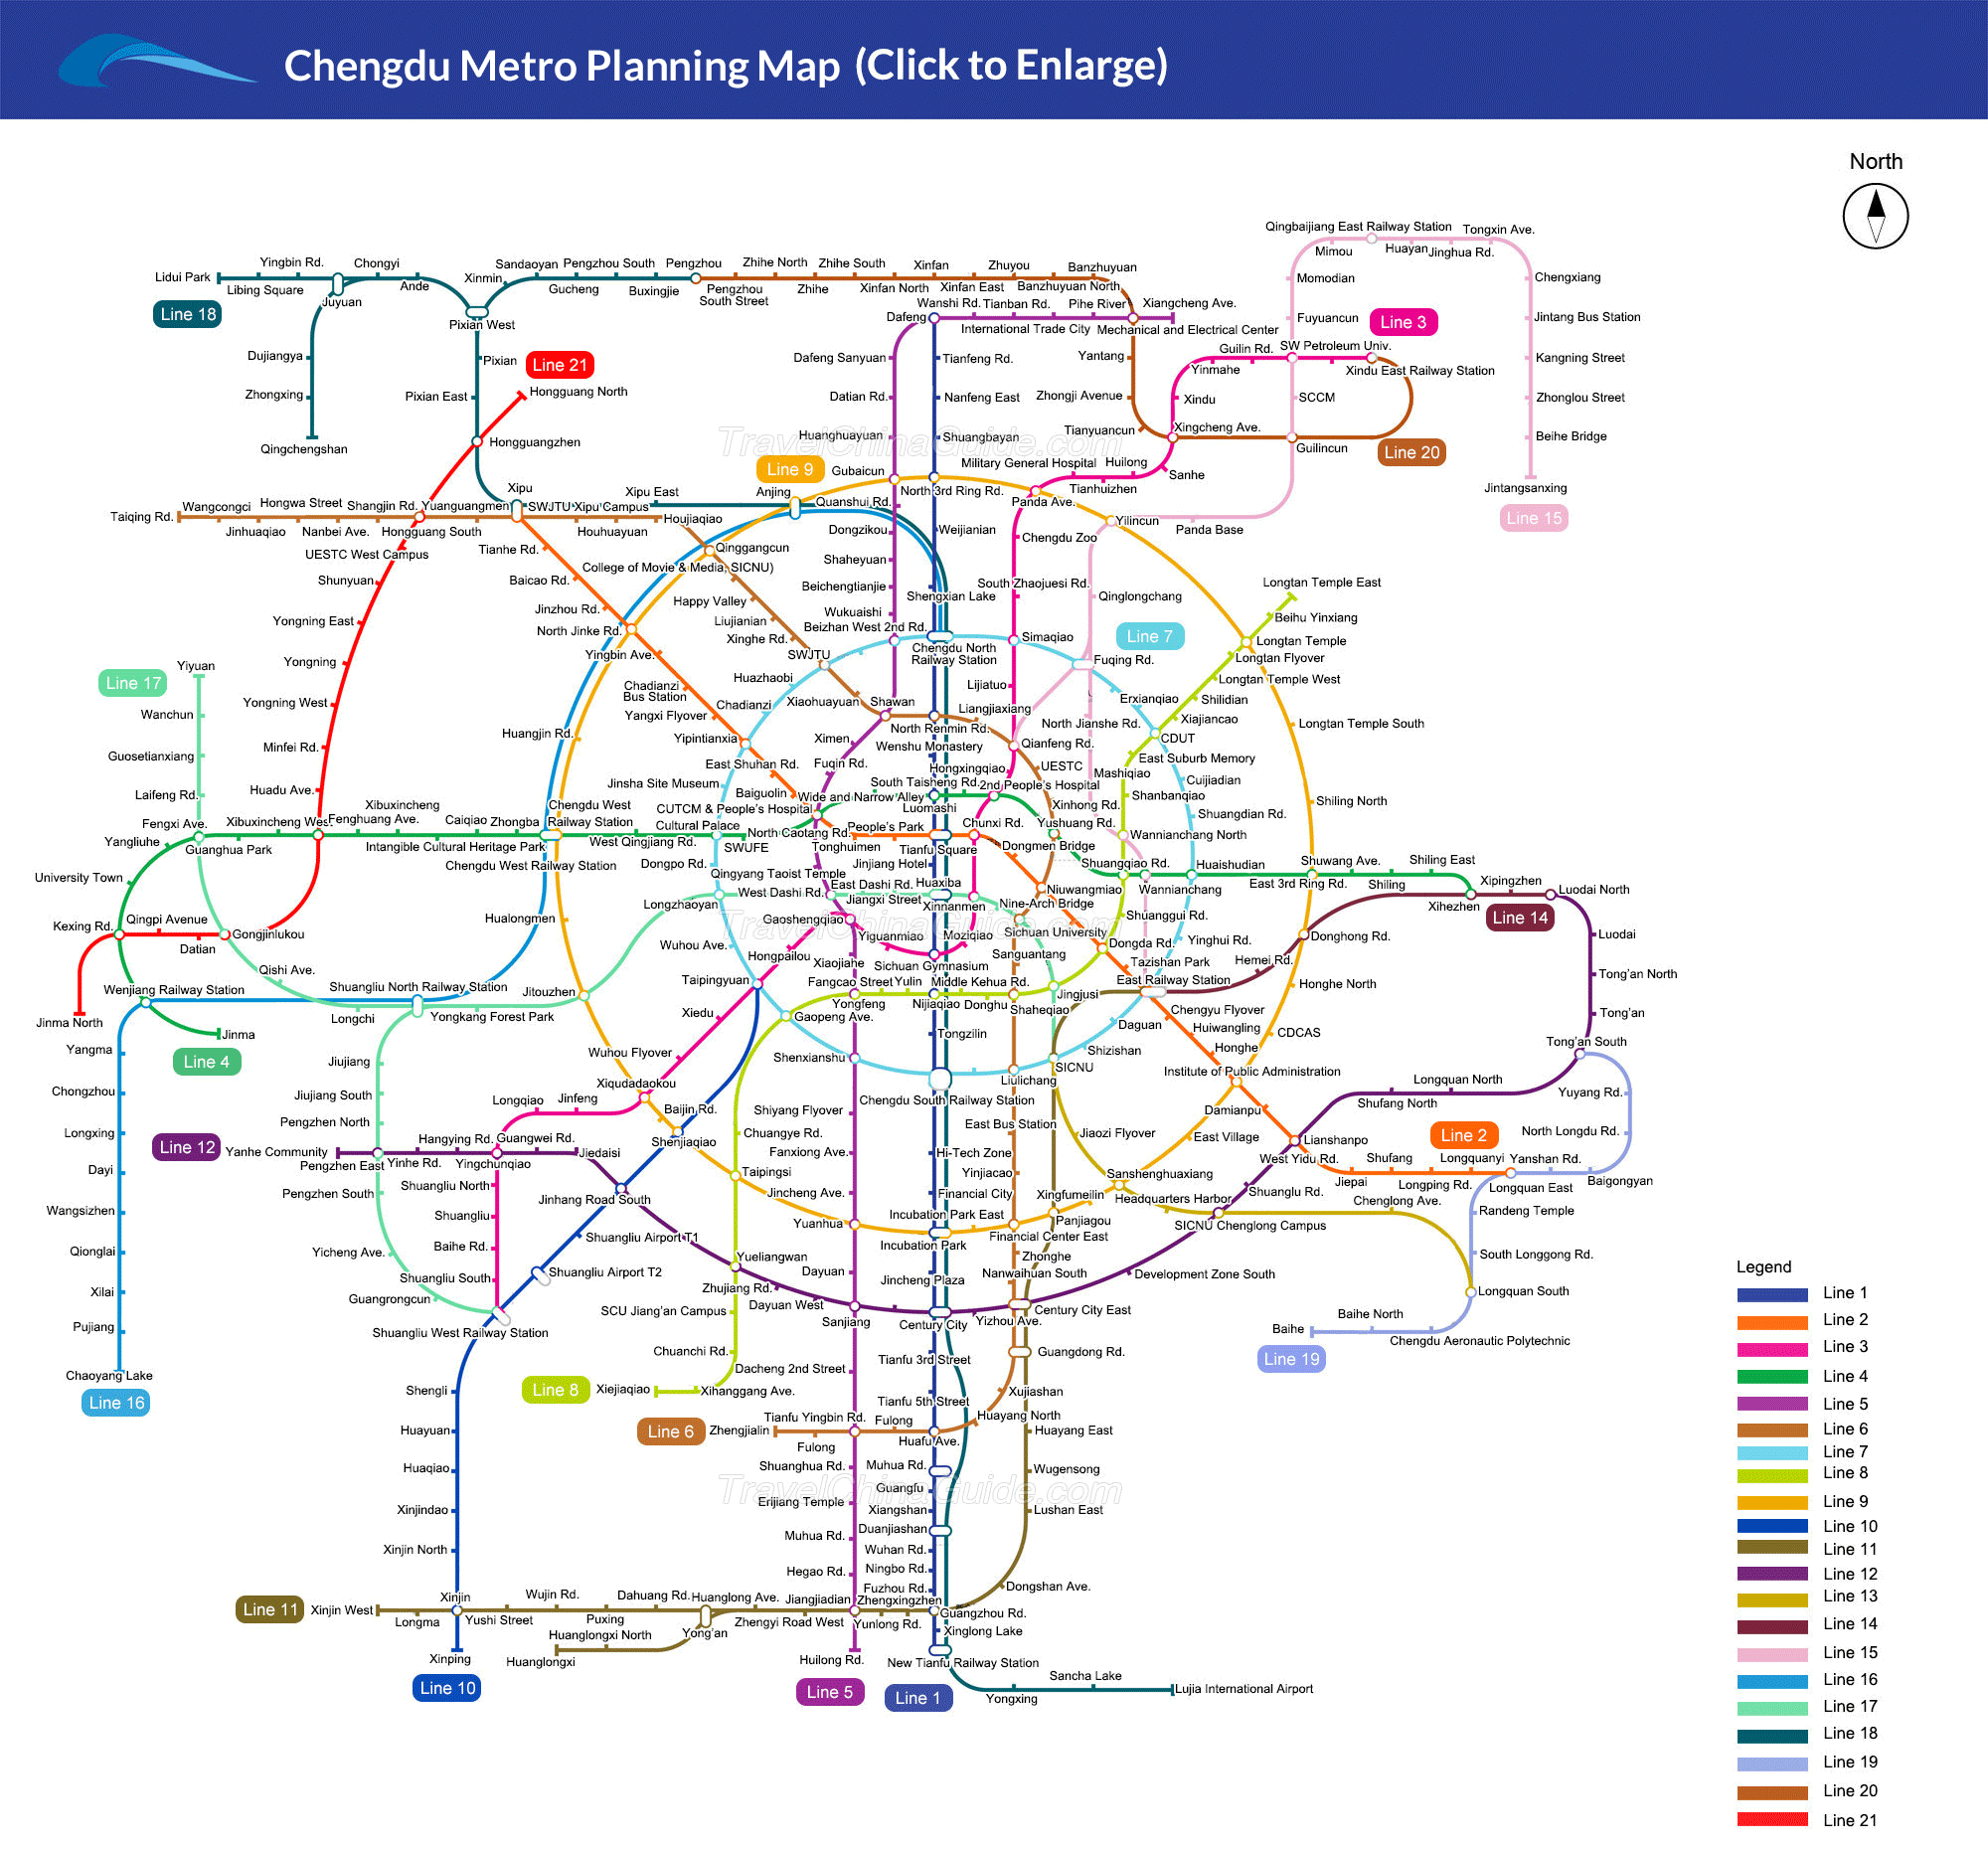 Beijing Subway Map 2017 Legend.What Are The Best And Worst Things About Public Transit In Chengdu